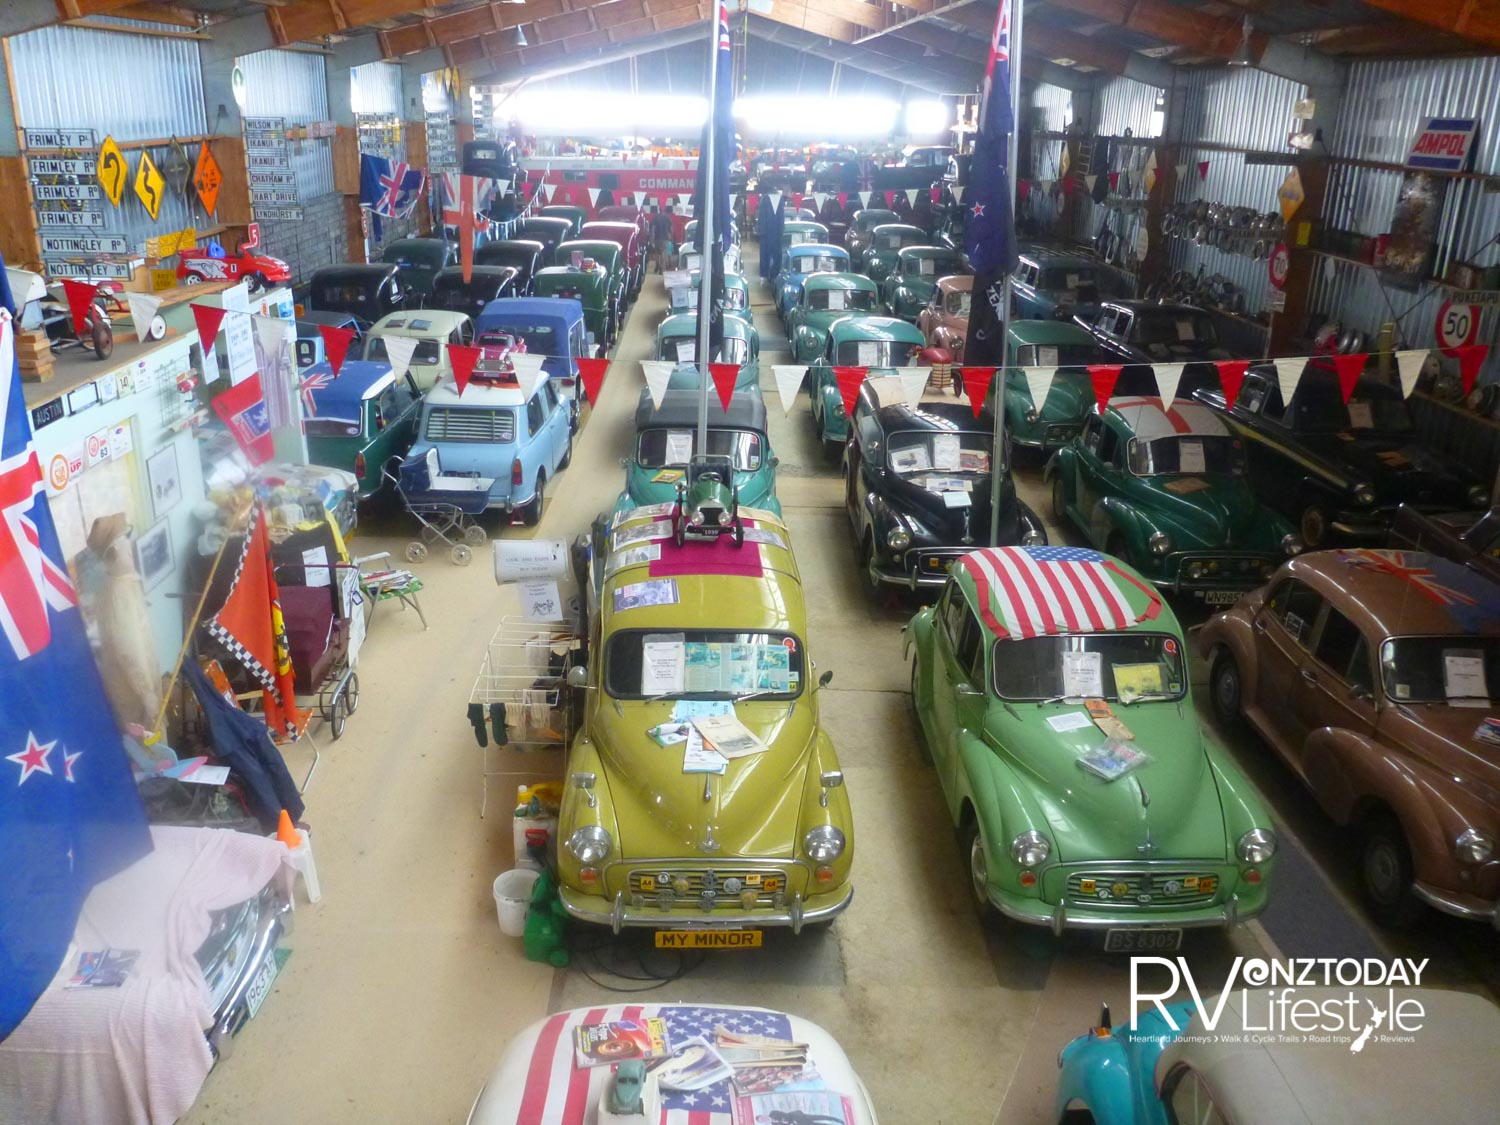 The Morris Minors collection is quite a sight